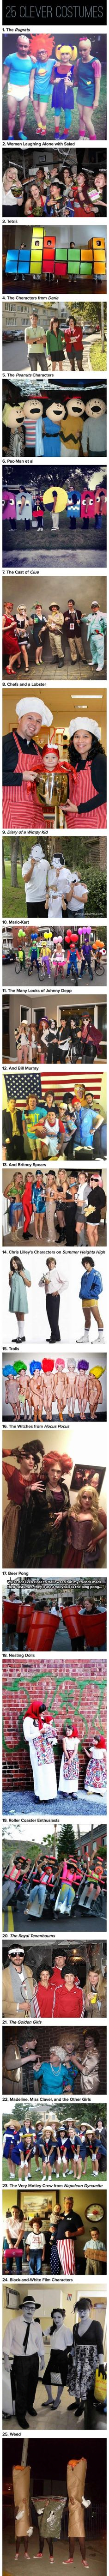 25 Clever Halloween Costumes To Wear As A Group